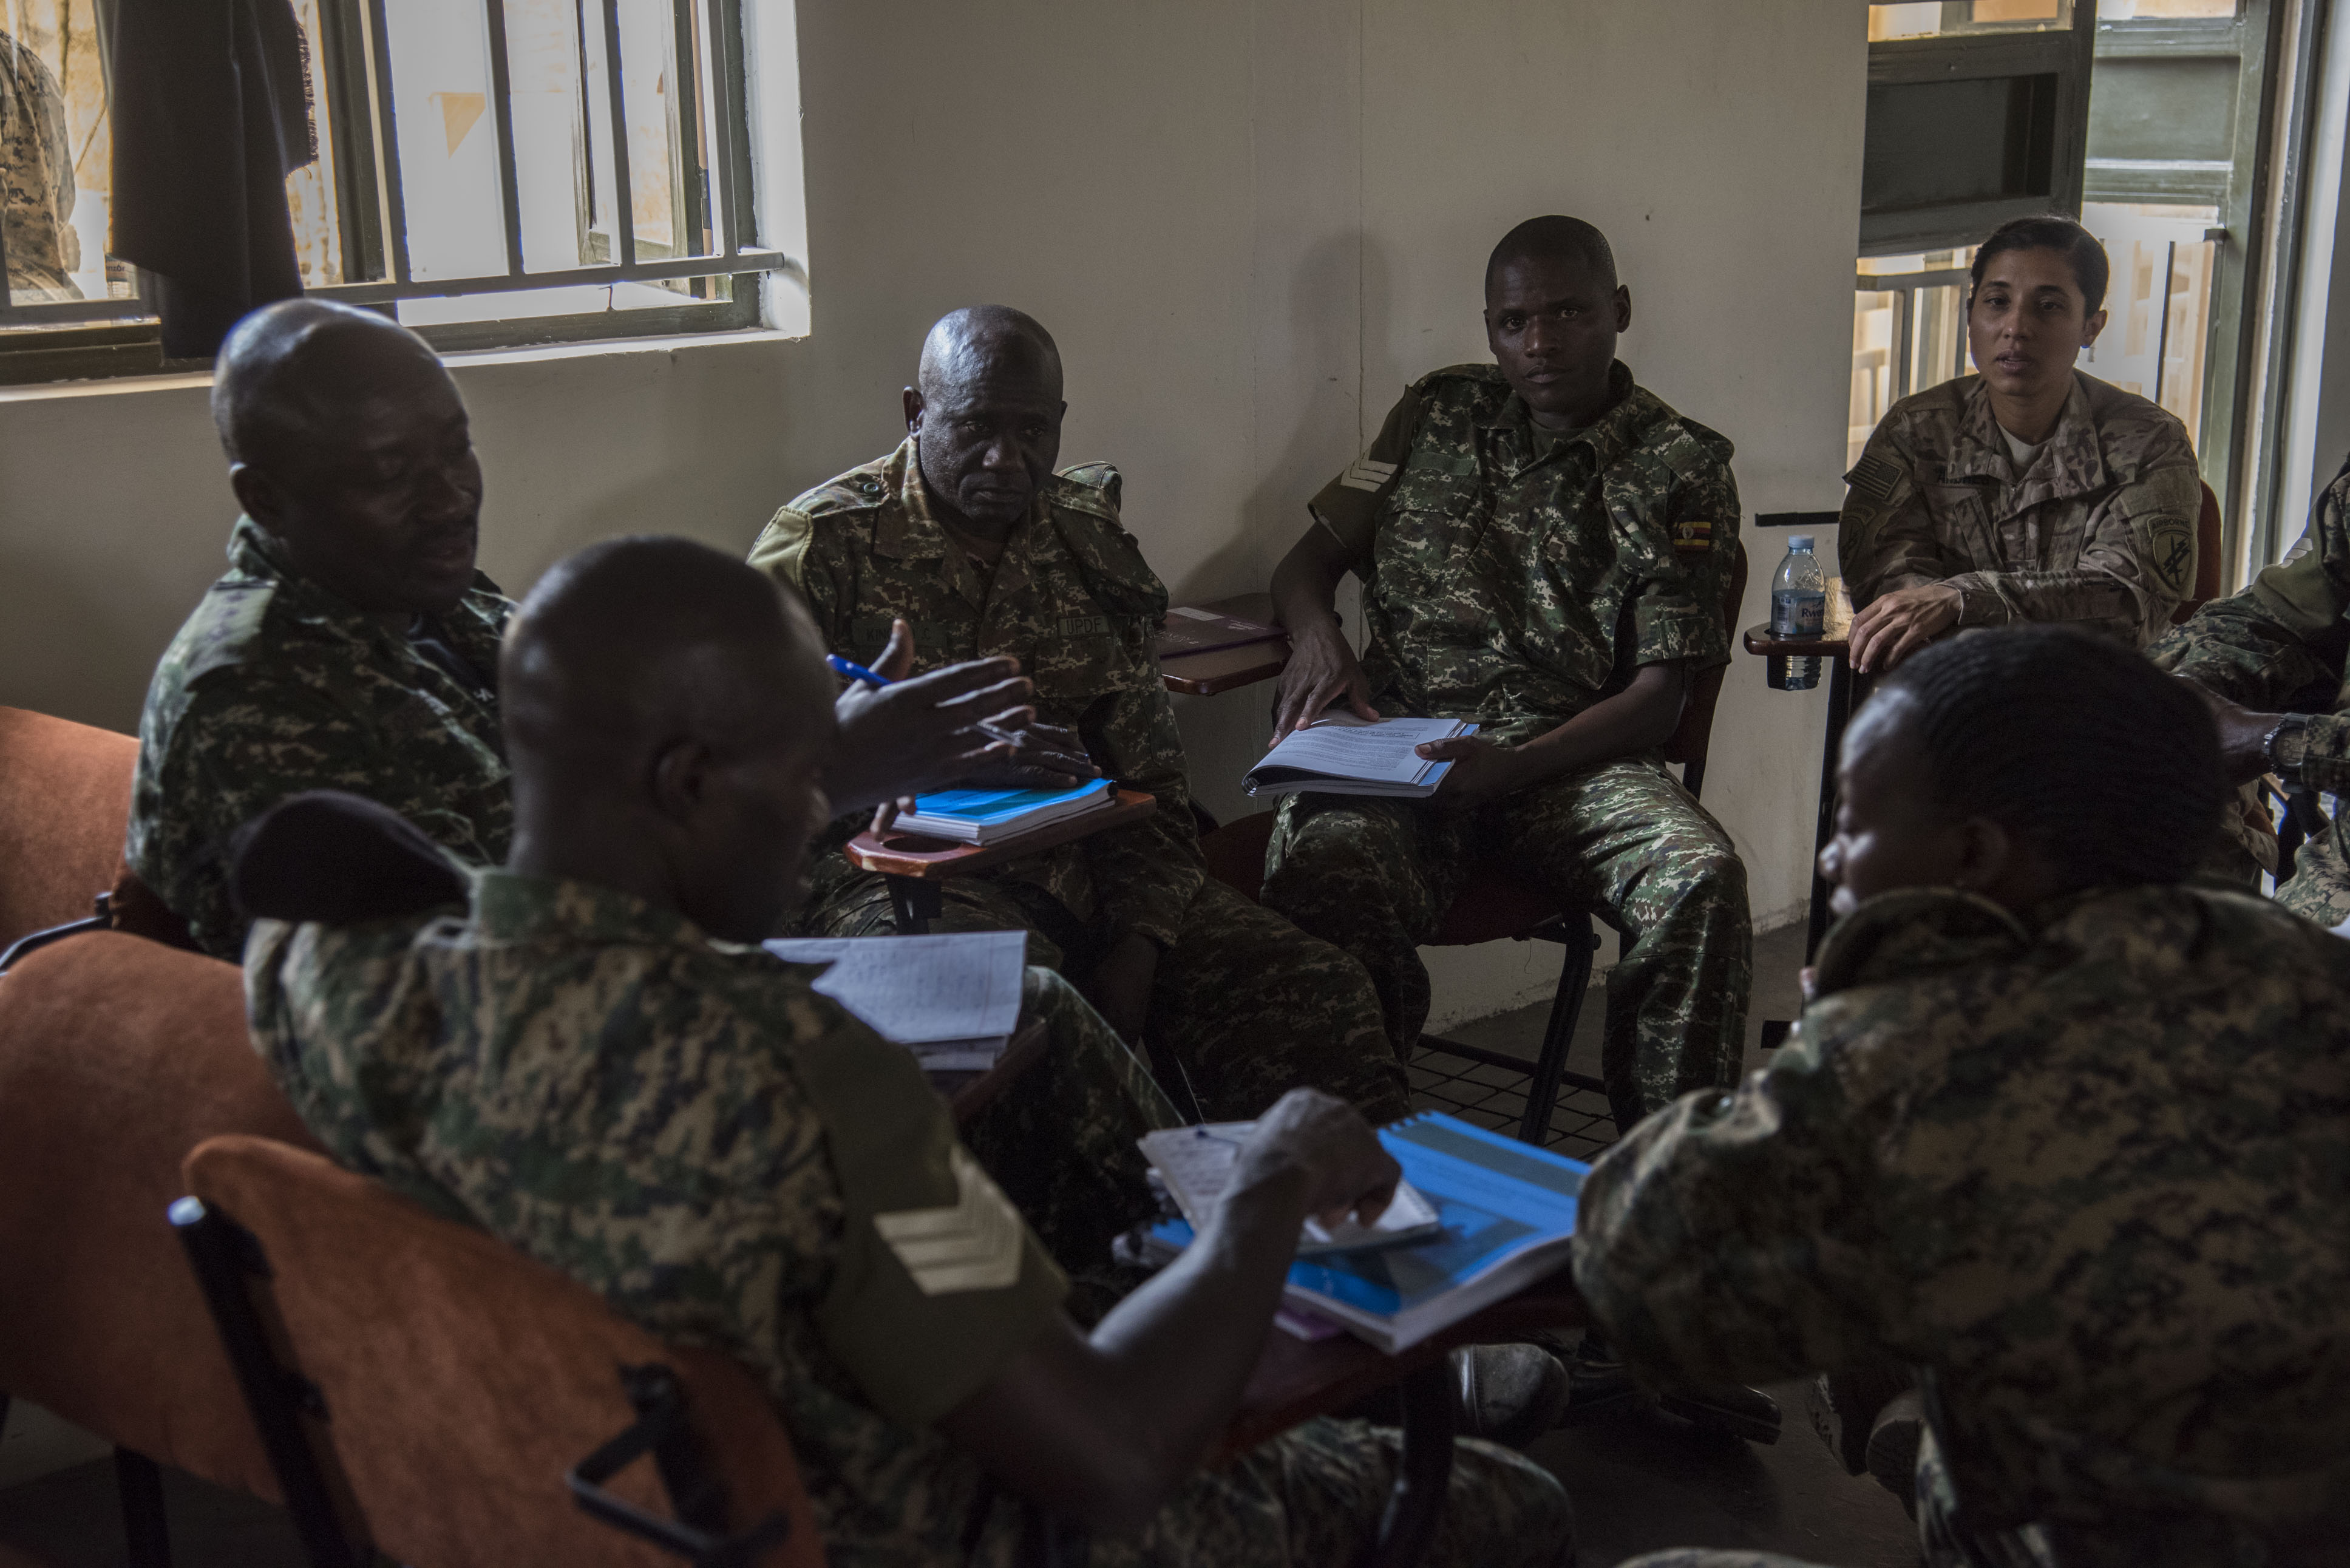 U.S. Army Captain Christine Andreu, assigned to the 407th Civil Affairs (CA) Battalion, attached to the Combined Joint Task Force - Horn of Africa, teaches a Civil-Military (CIMIC) course to soldiers from the Uganda People's Defence Force (UPDF) as part of a Civil Affairs Tactical Company Course held at Camp Singo, Uganda, Feb. 08, 2018.  CJTF-HOA service members are forward deployed to Camp Singo to advise and assist the UPDF in preparing Ugandan Battle Group 25 for an upcoming deployment in support of the African Union Mission in Somalia (AMISOM). (U.S. Air National Guard photo by Staff Sgt. Allyson L. Manners)